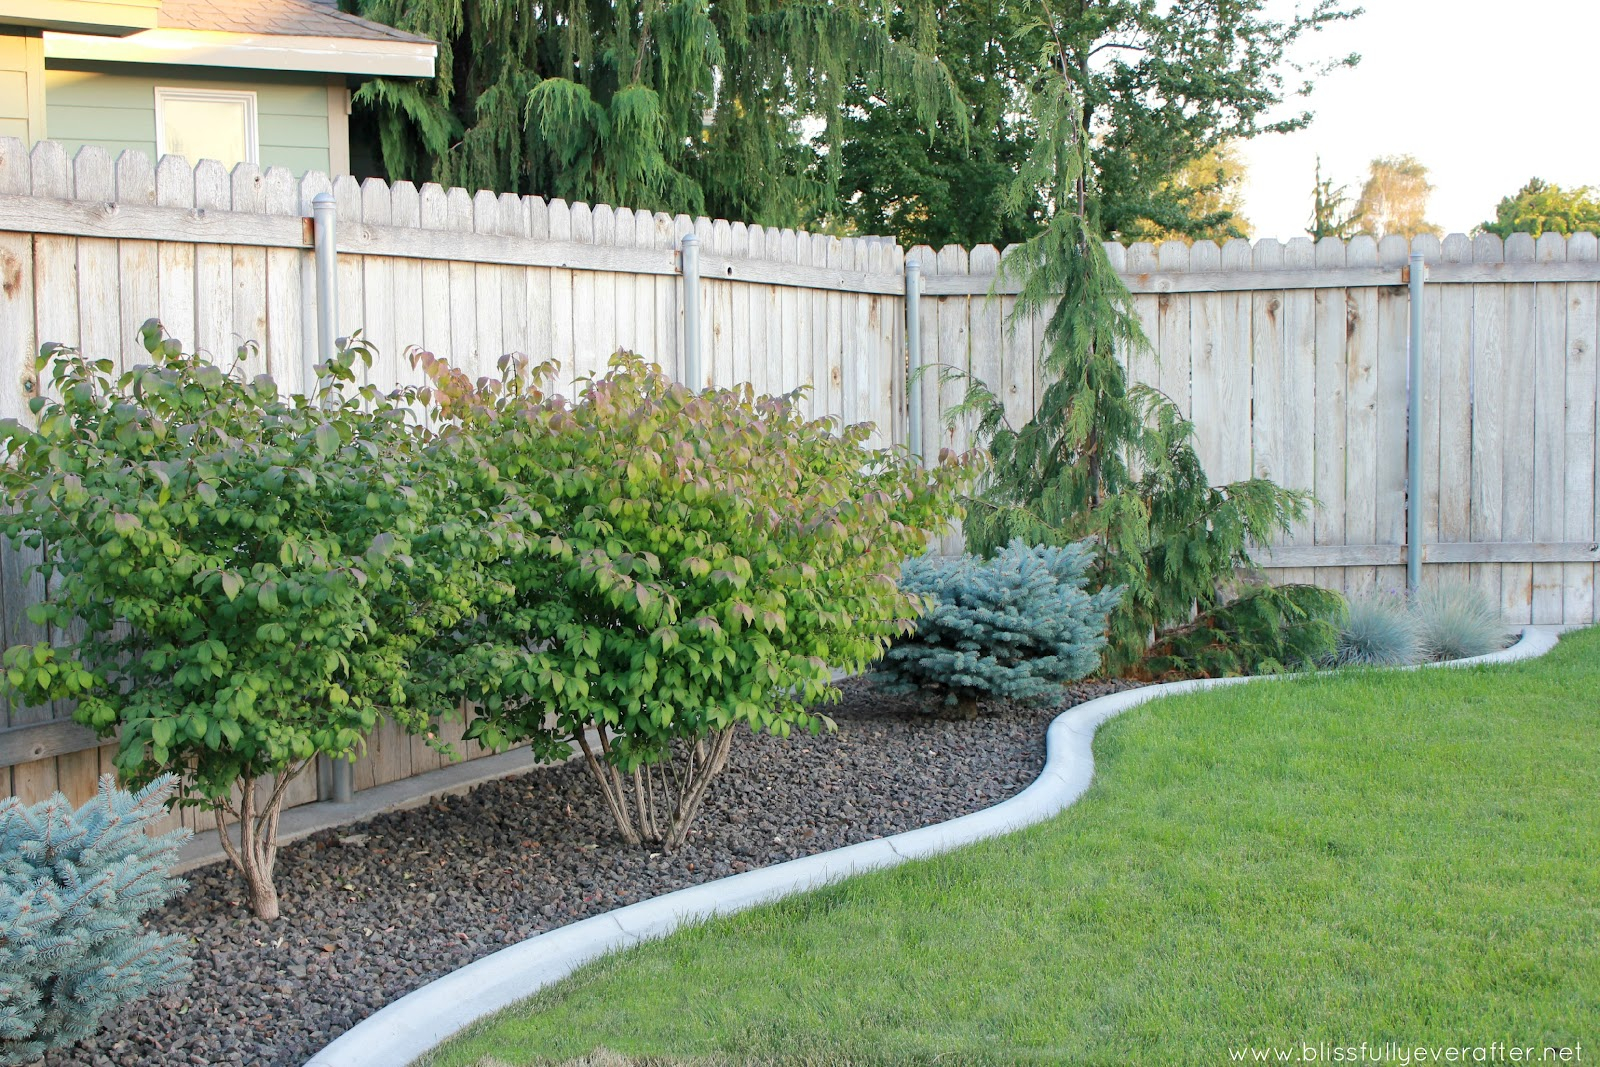 Back Yard Landscaping Ideas On A Budget Backyard Design Ideas in 10 Smart Initiatives of How to Makeover How To Landscape A Backyard On A Budget